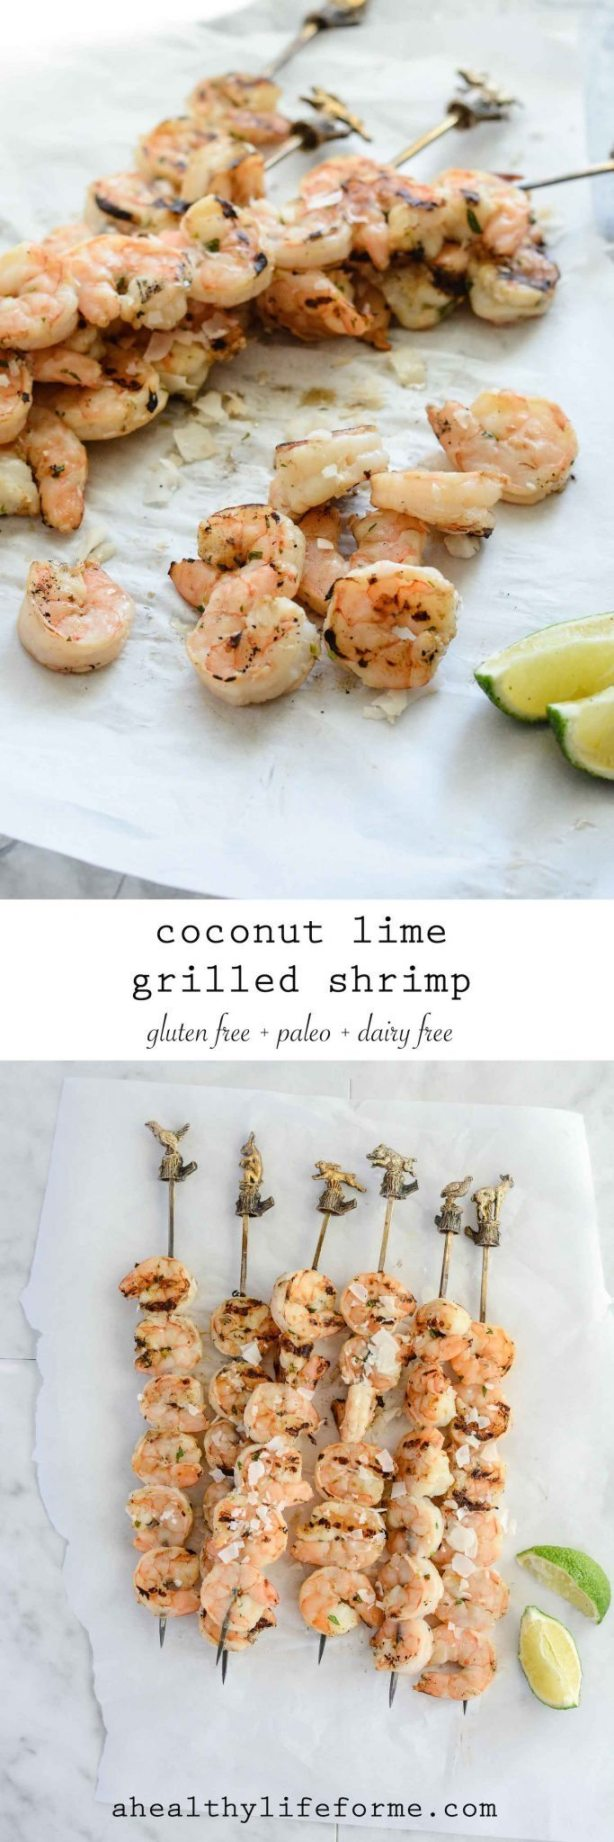 Coconut Lime Grilled Shrimp Gluten Free Paleo Dairy Free Recipe | ahealhtylifeforme.com